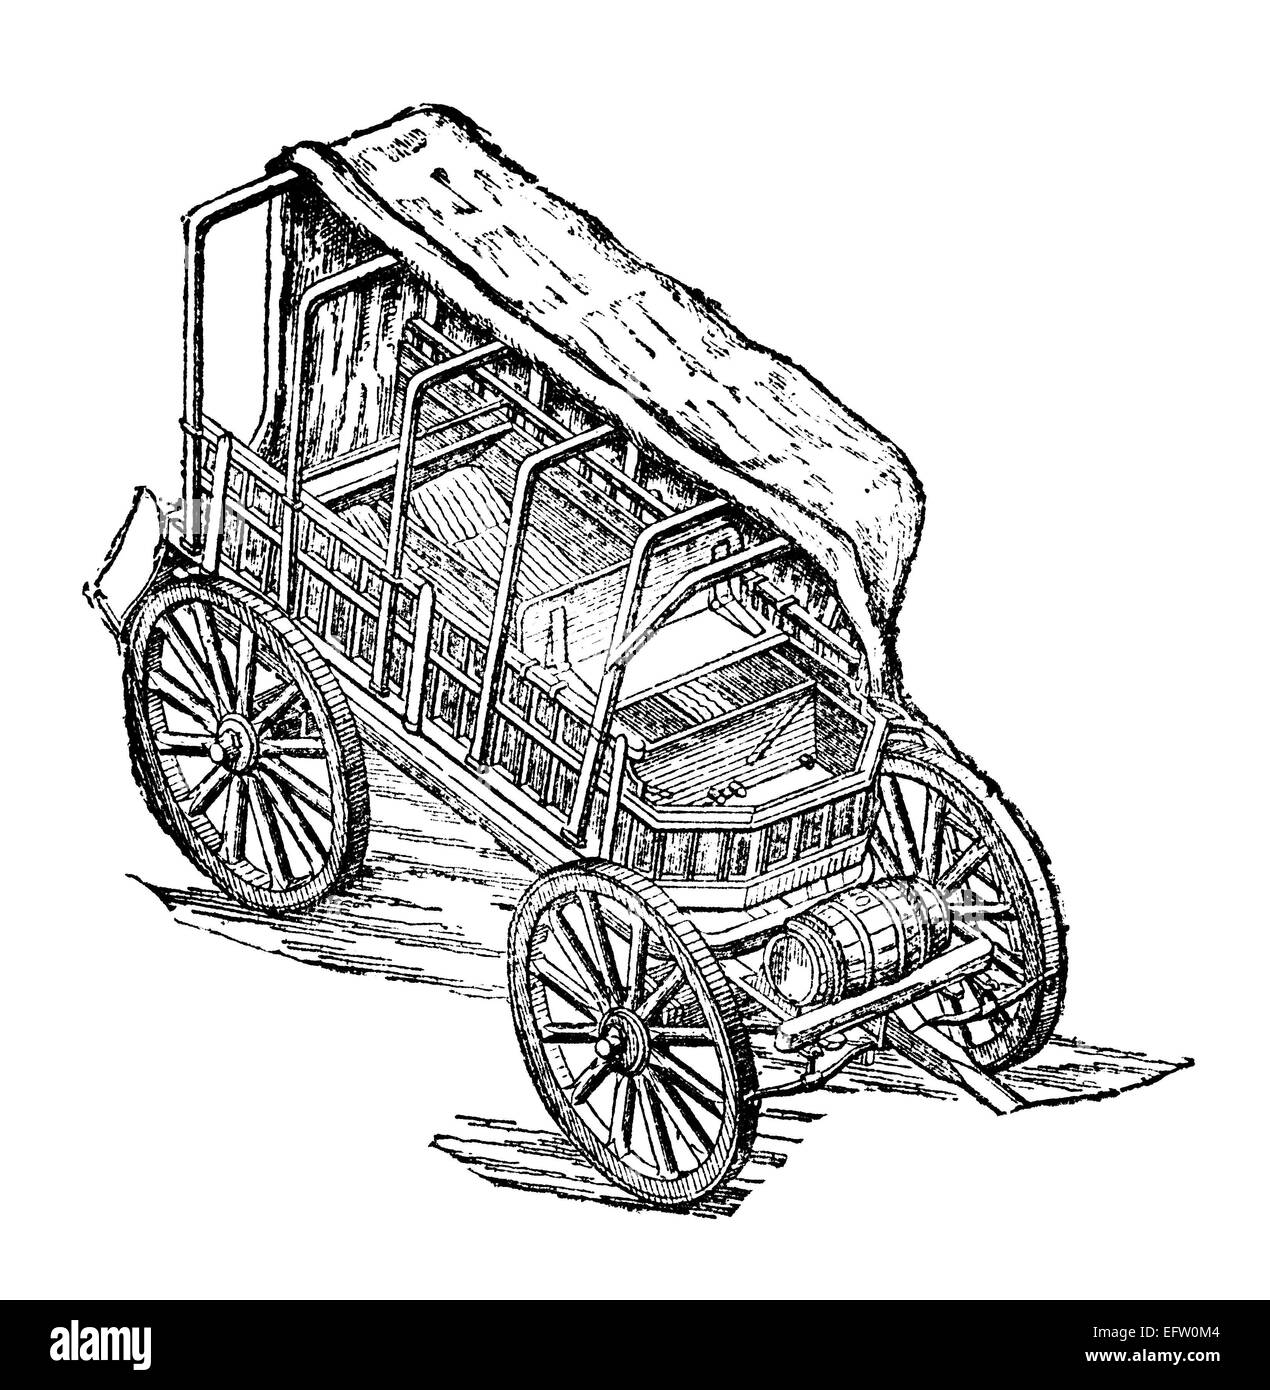 Wagon Cut Out Stock Images & Pictures - Alamy